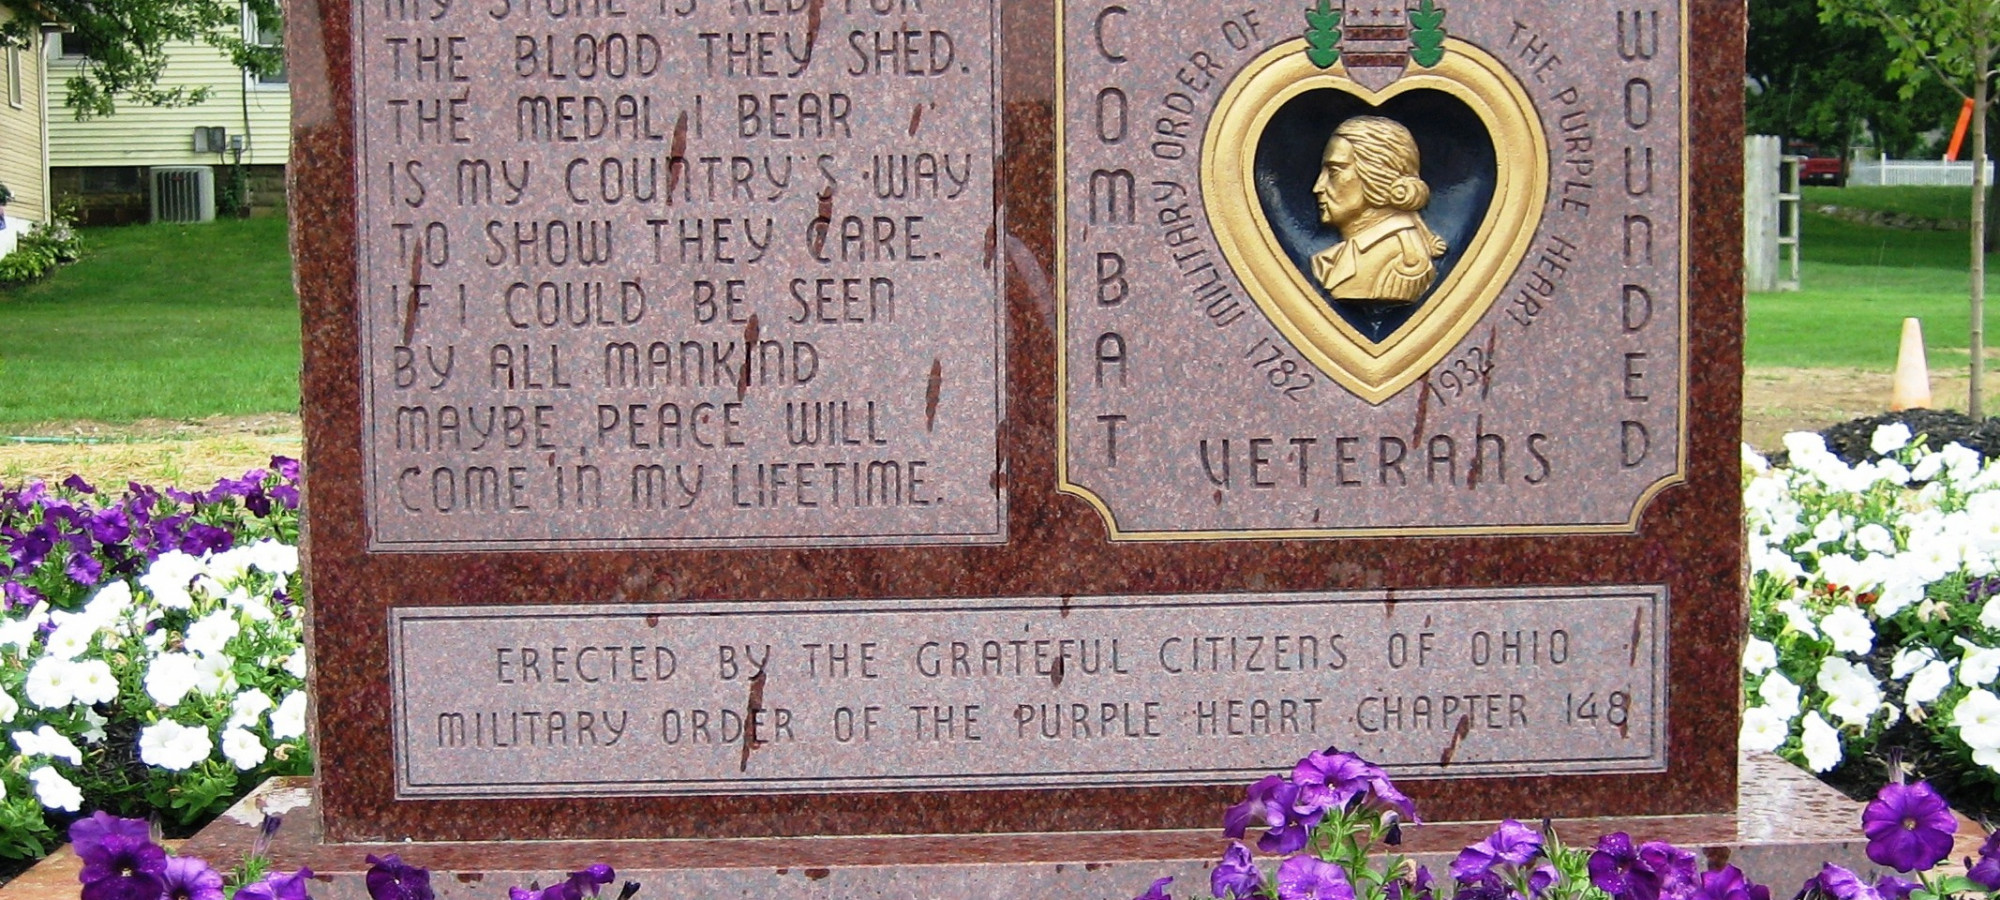 Wounded in Combat Monument